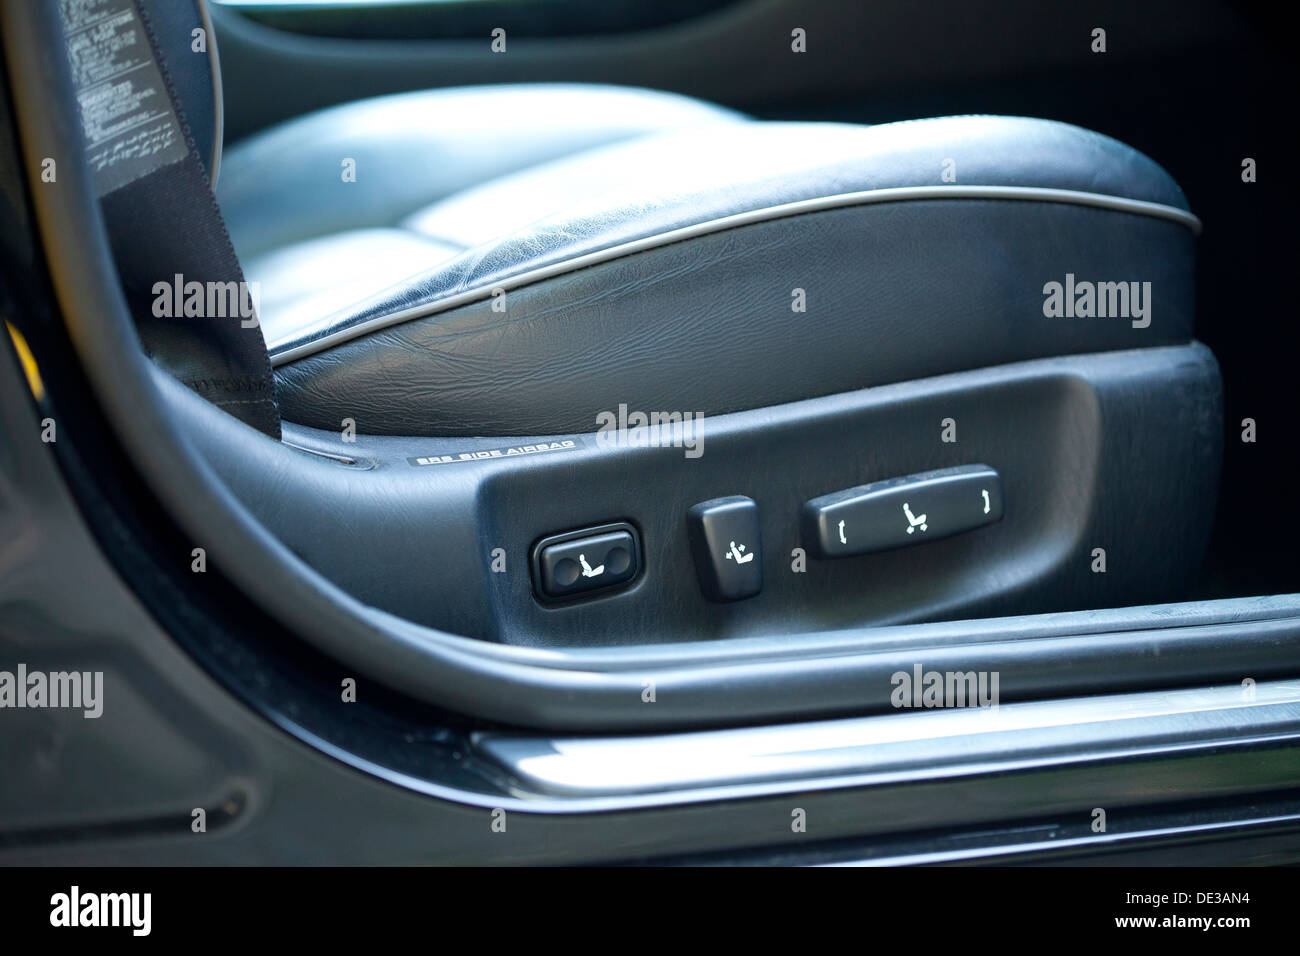 Modern car seat adjustment controls - Stock Image